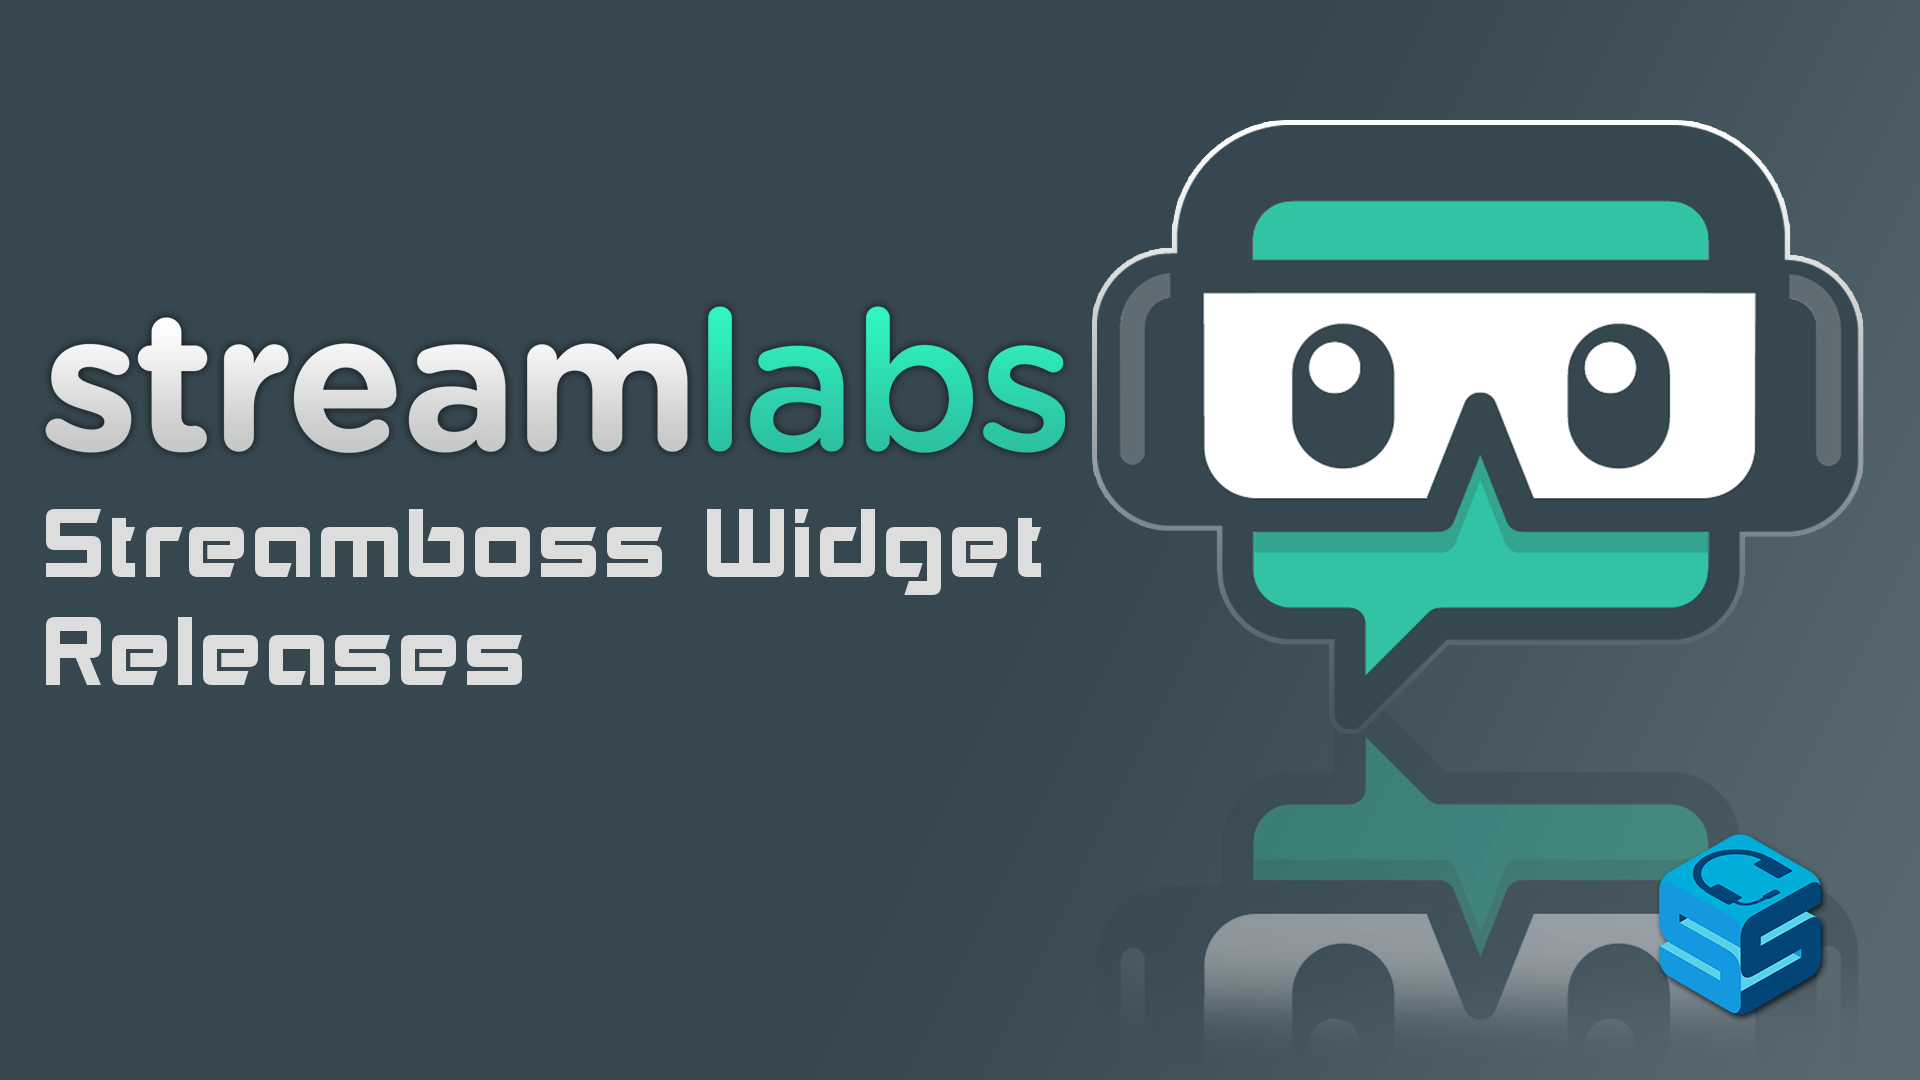 Streamlabs Streamboss Widget Releases - StreamerSquare